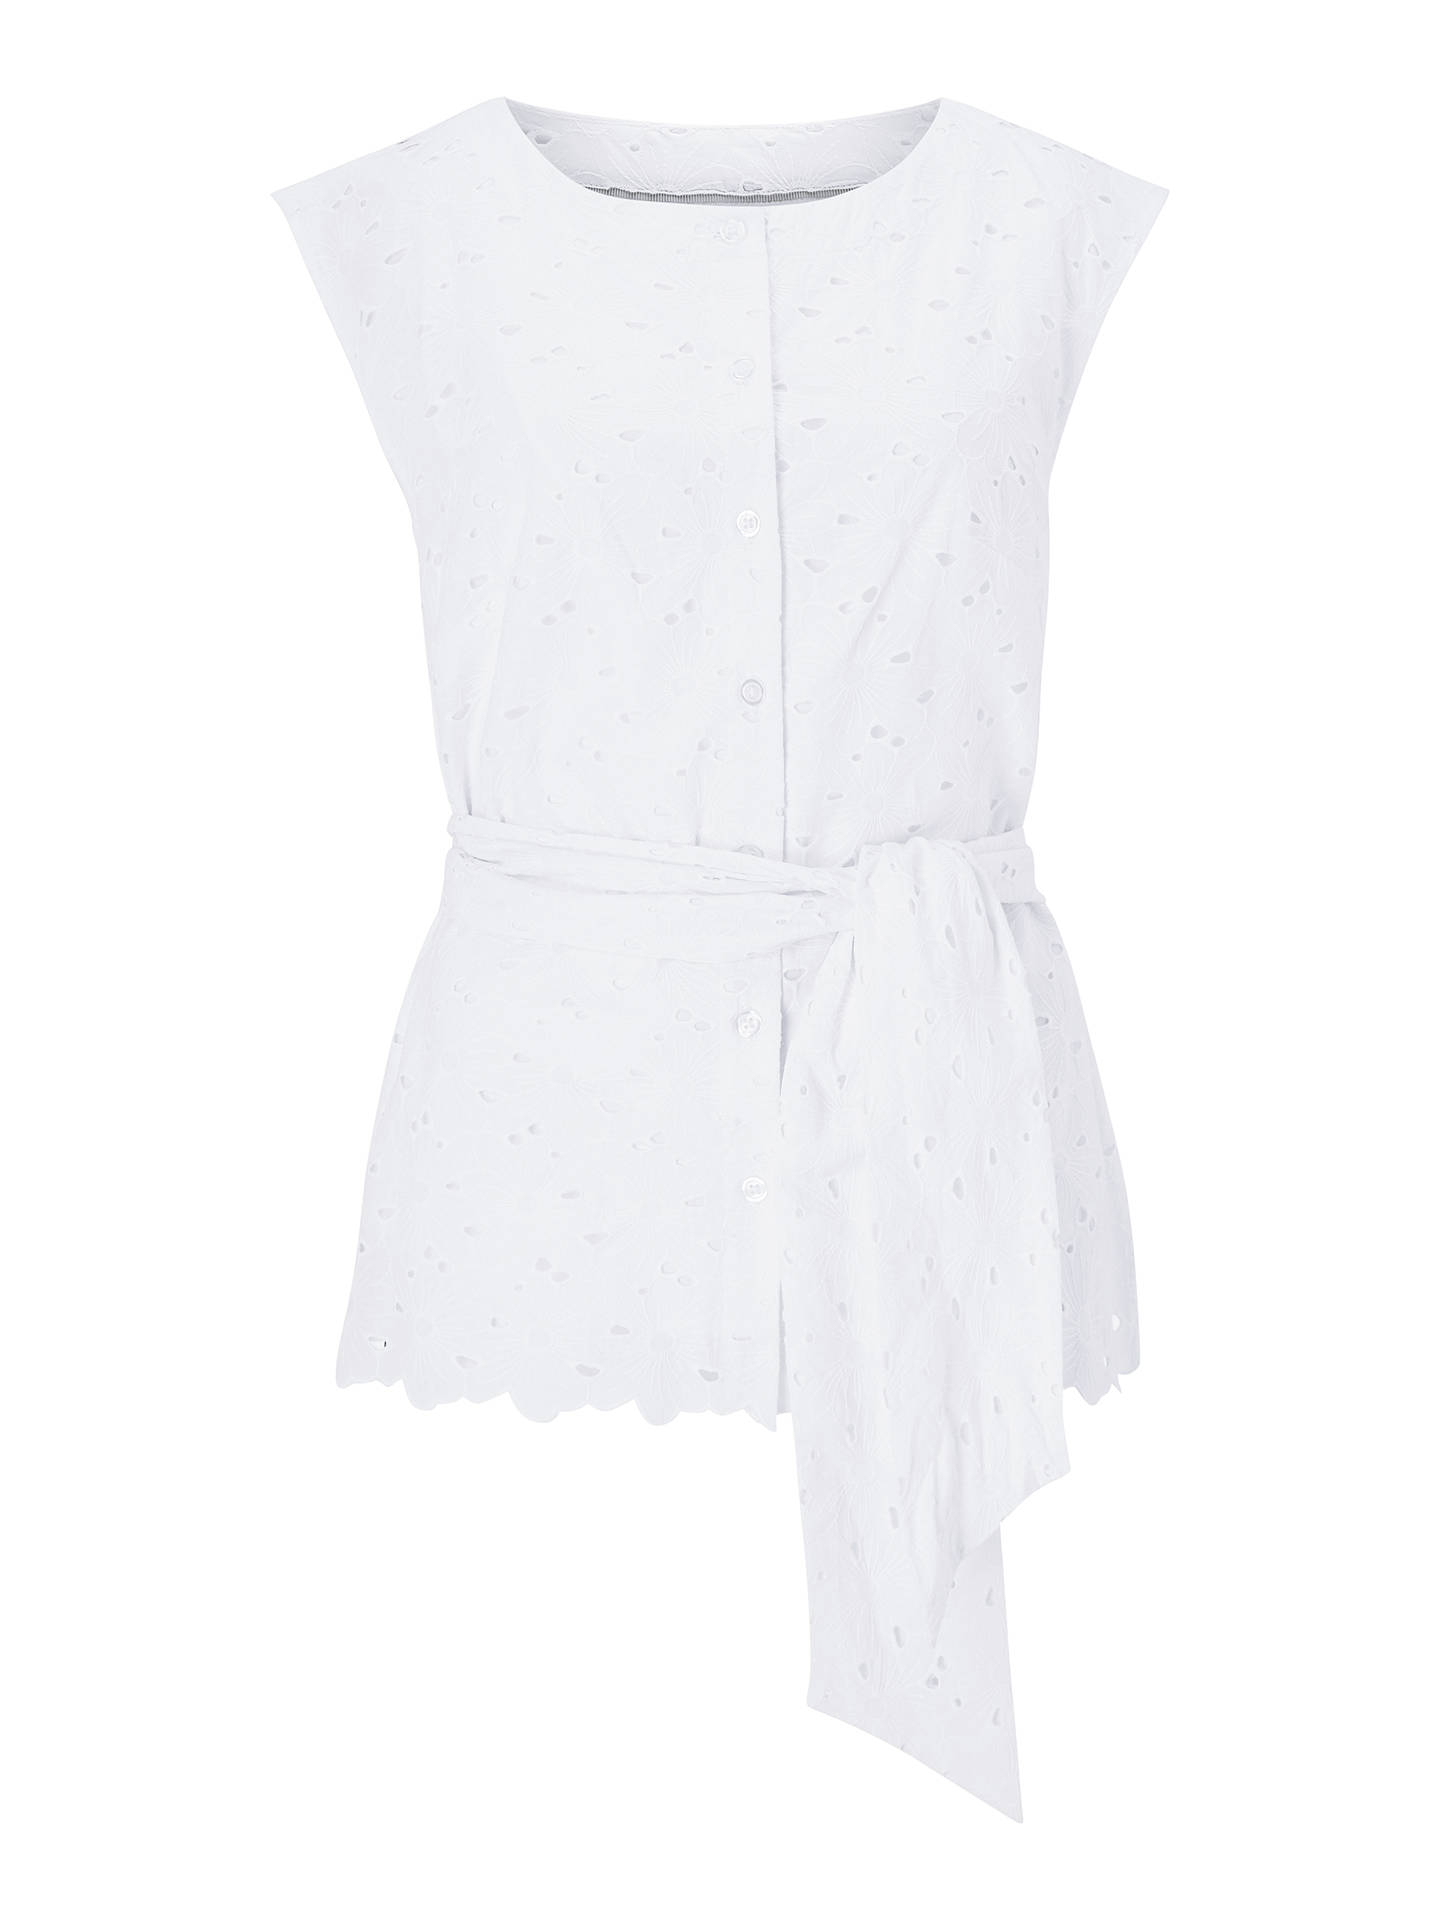 Buy Boden Claudette Broderie Top, White, 18 Online at johnlewis.com